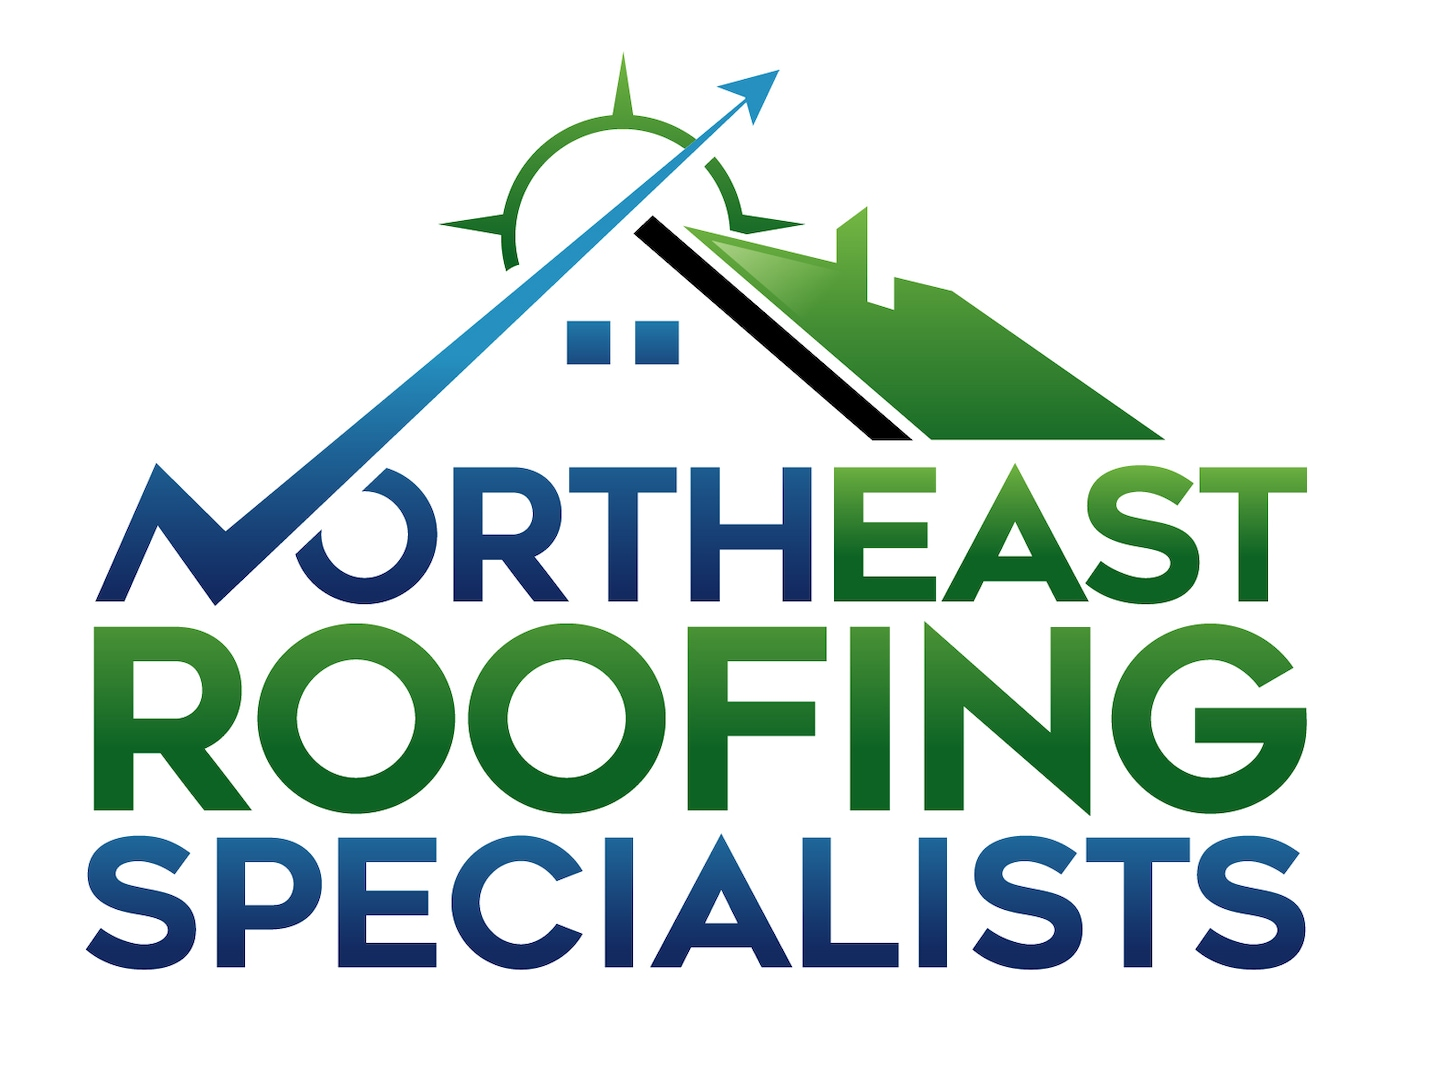 Northeast Roofing Specialists